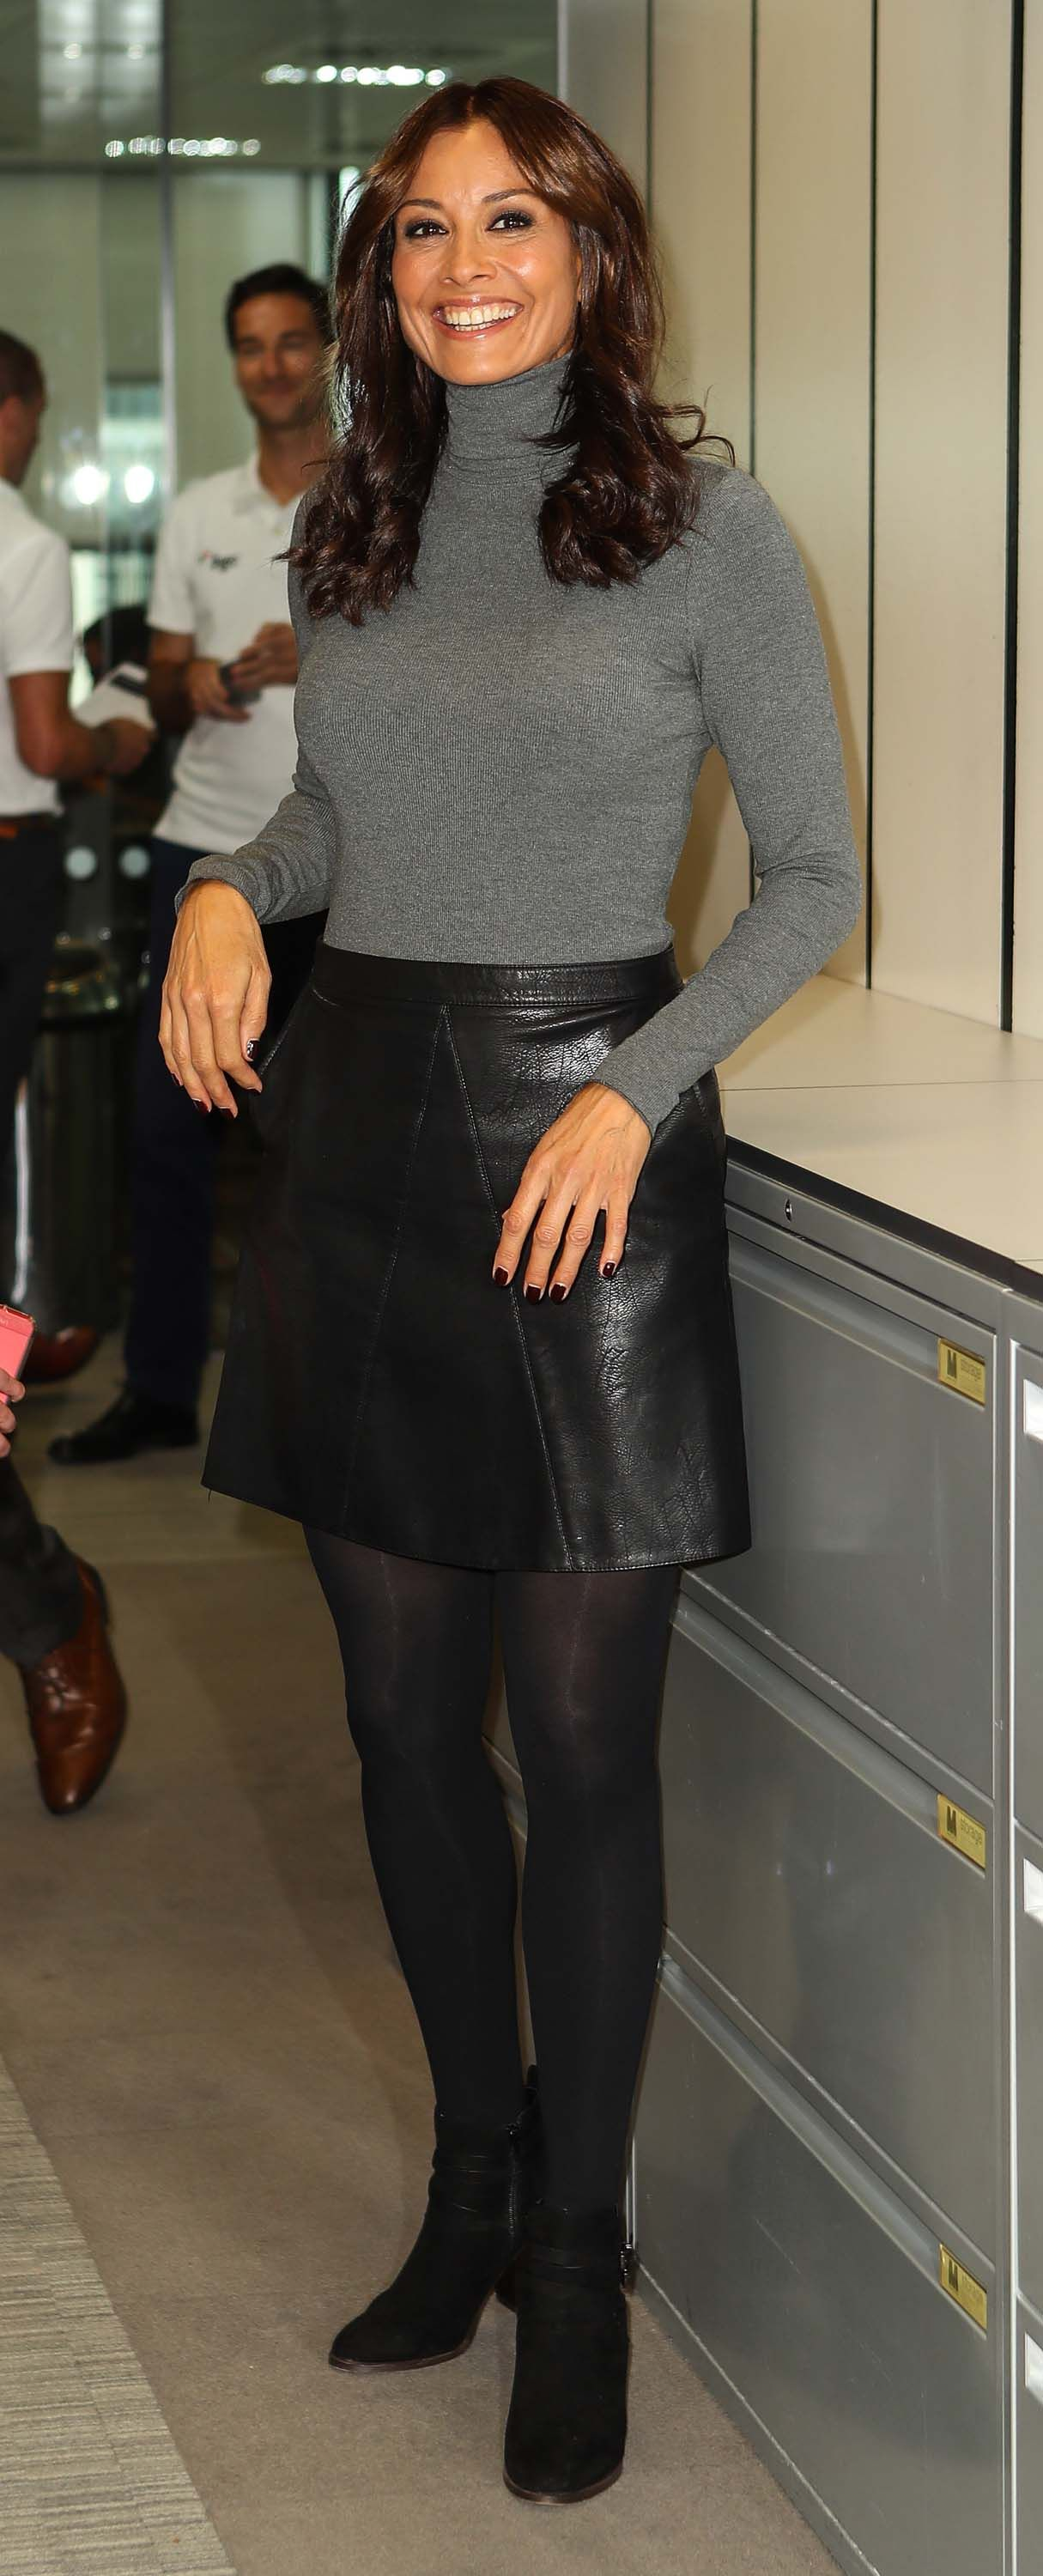 27c113e168 Melanie Sykes attends BGC Charity Day in tight gray pullover black leather  skirt and ankle boots